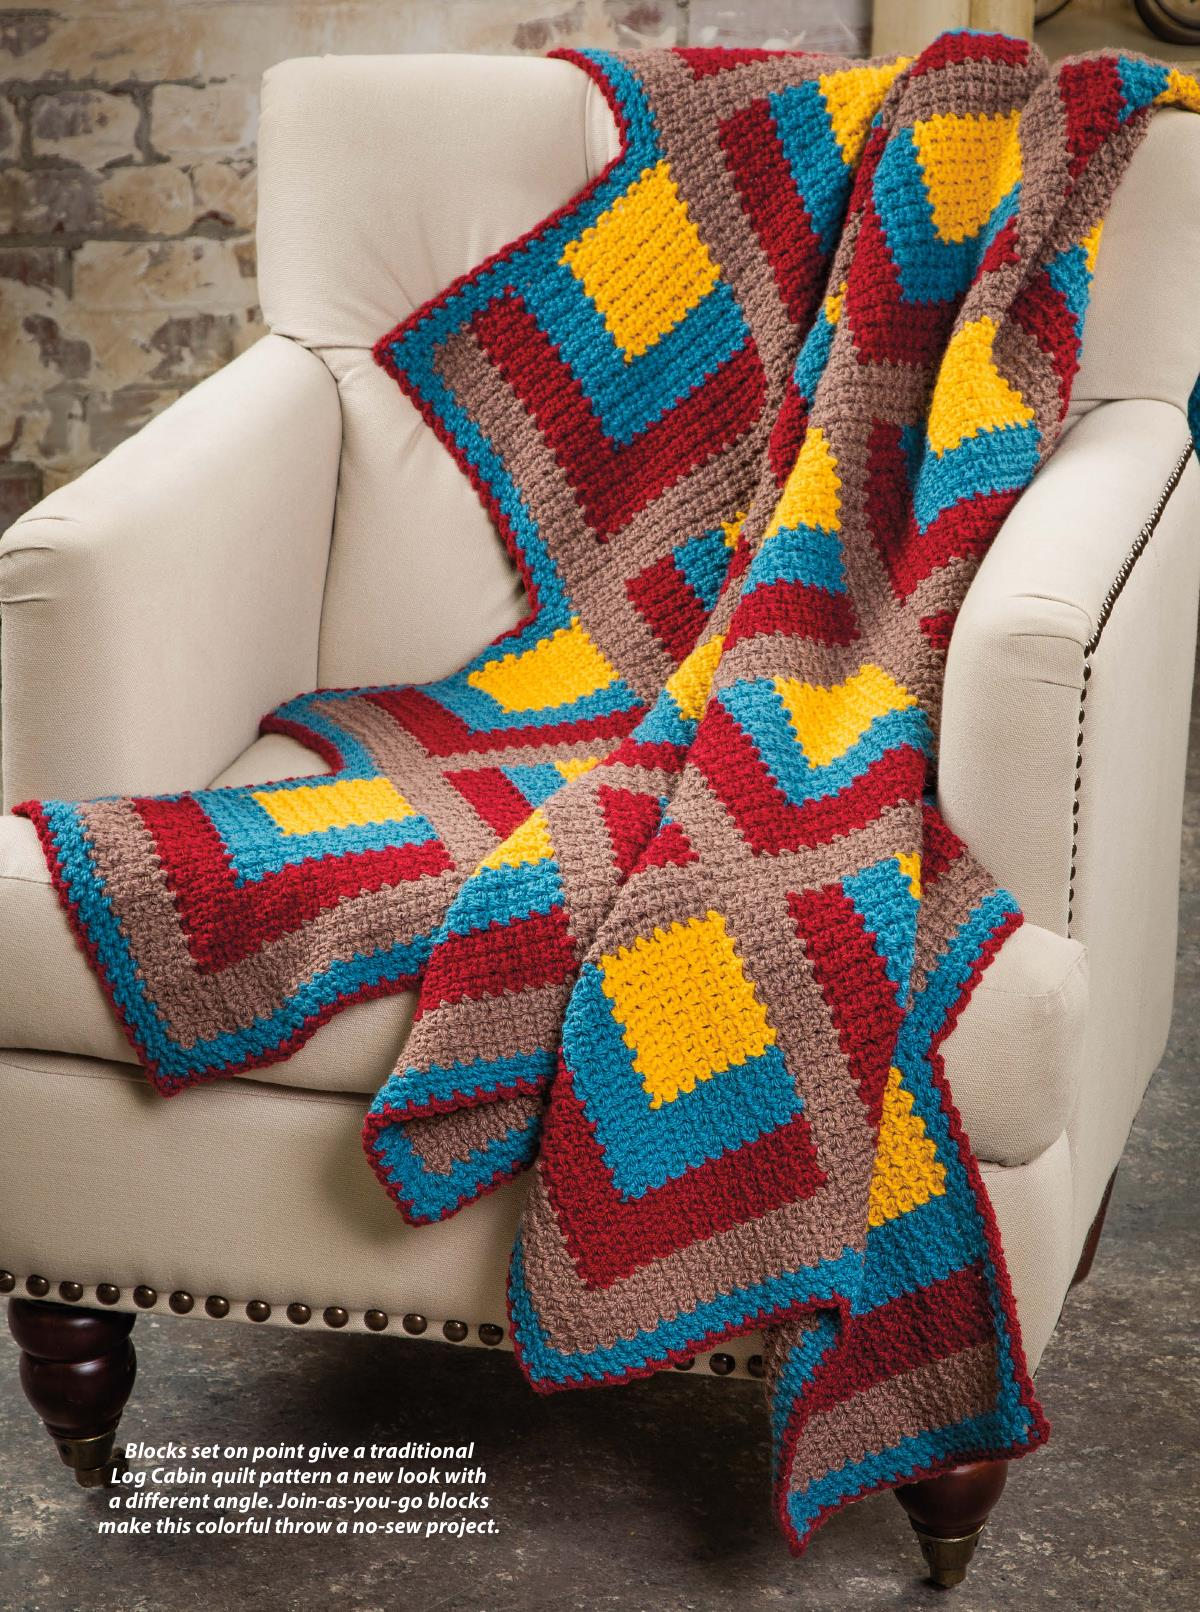 Cascading Squares Throw Crochet | Free Crochet Blanket Patterns : crochet quilt squares - Adamdwight.com